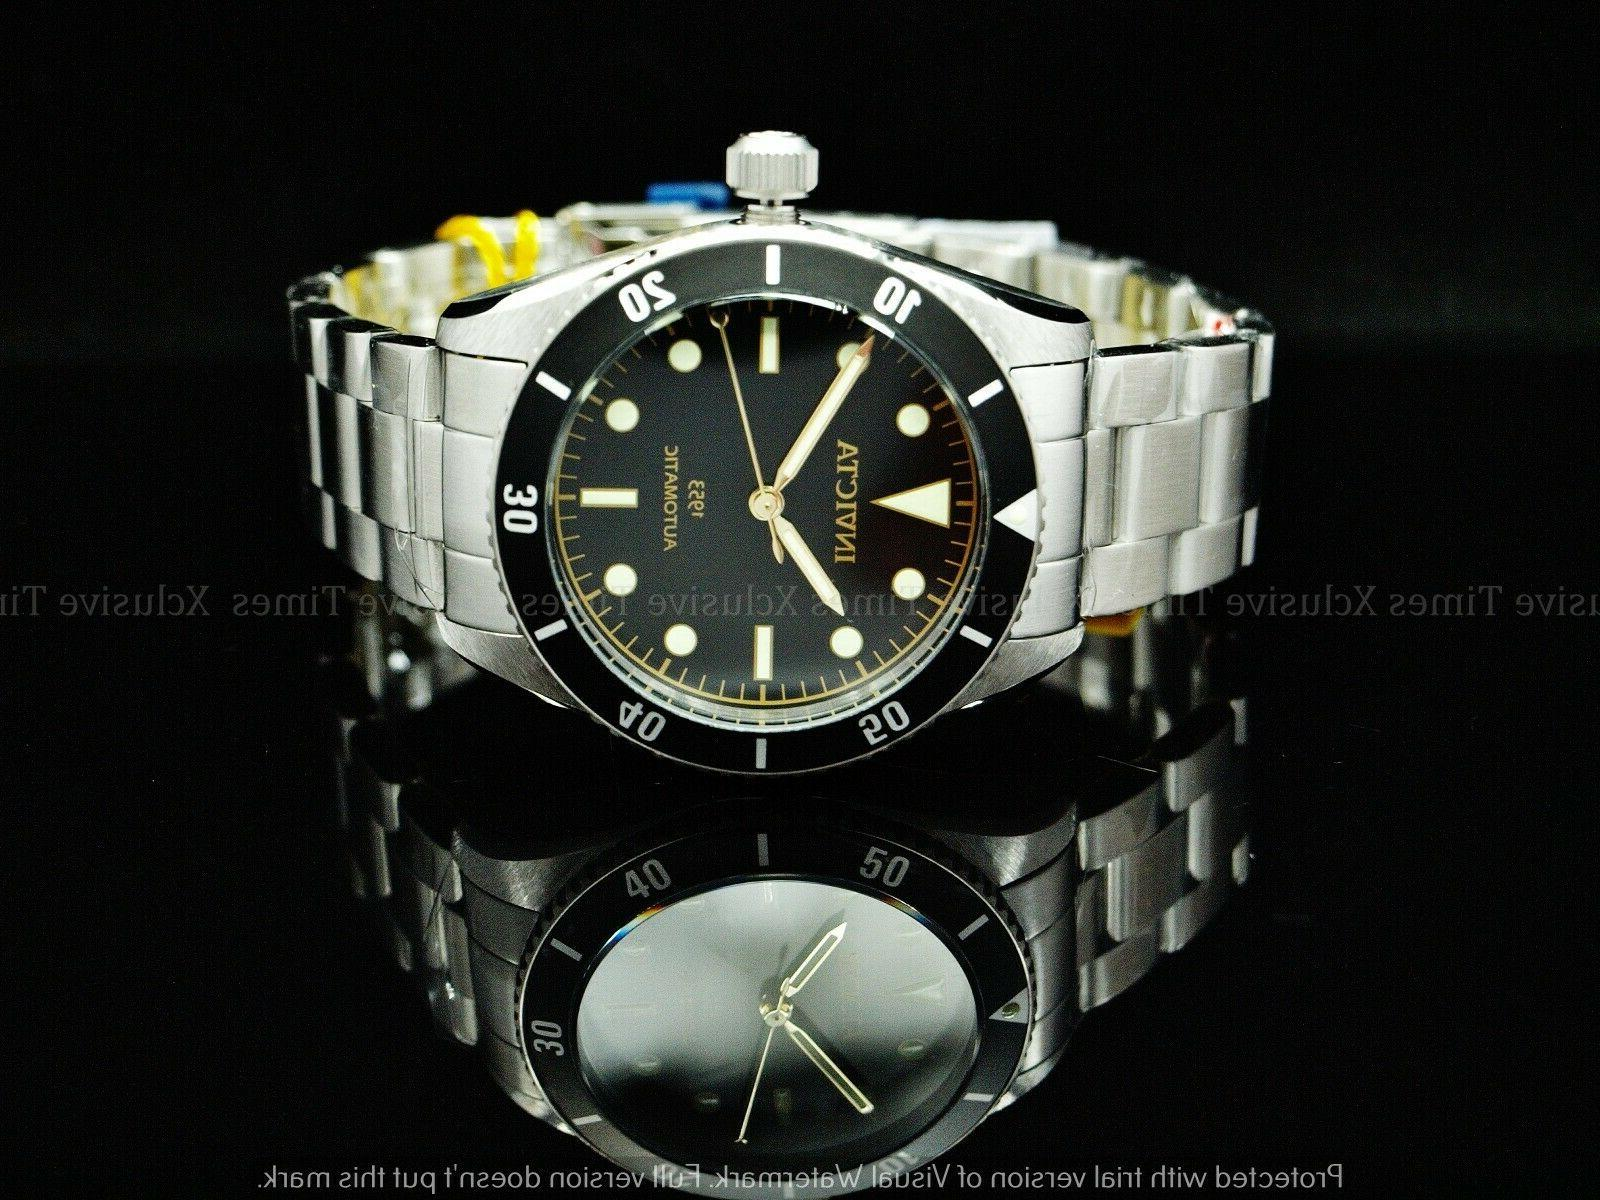 RARE Invicta Pro Diver Homage Automatic NH35 SS Watch